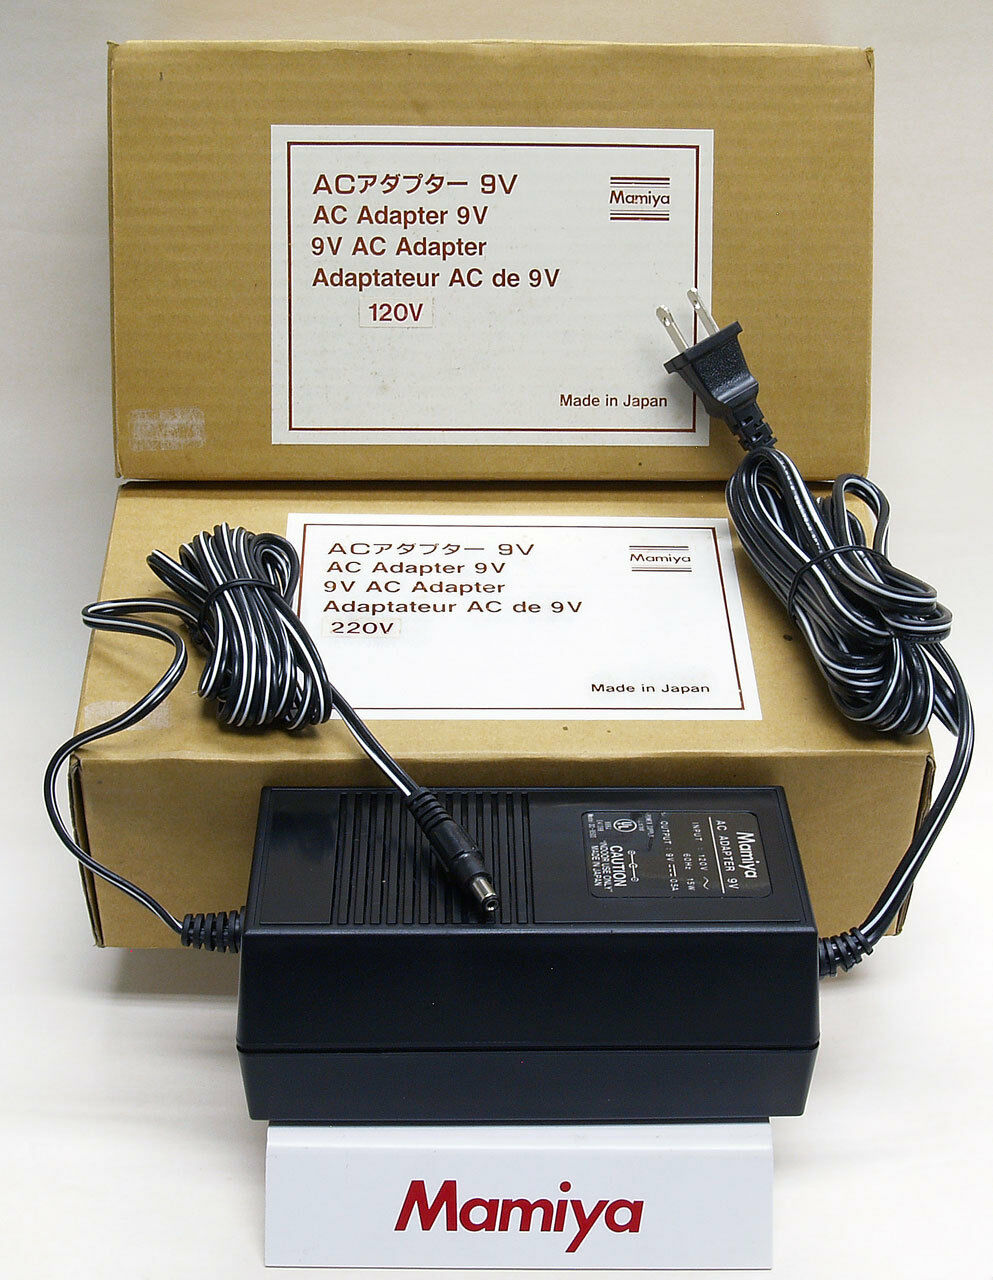 Mamiya Rz Pro Ii / Pro Iid Winder Ac Adapter (120 V) no More Batteries